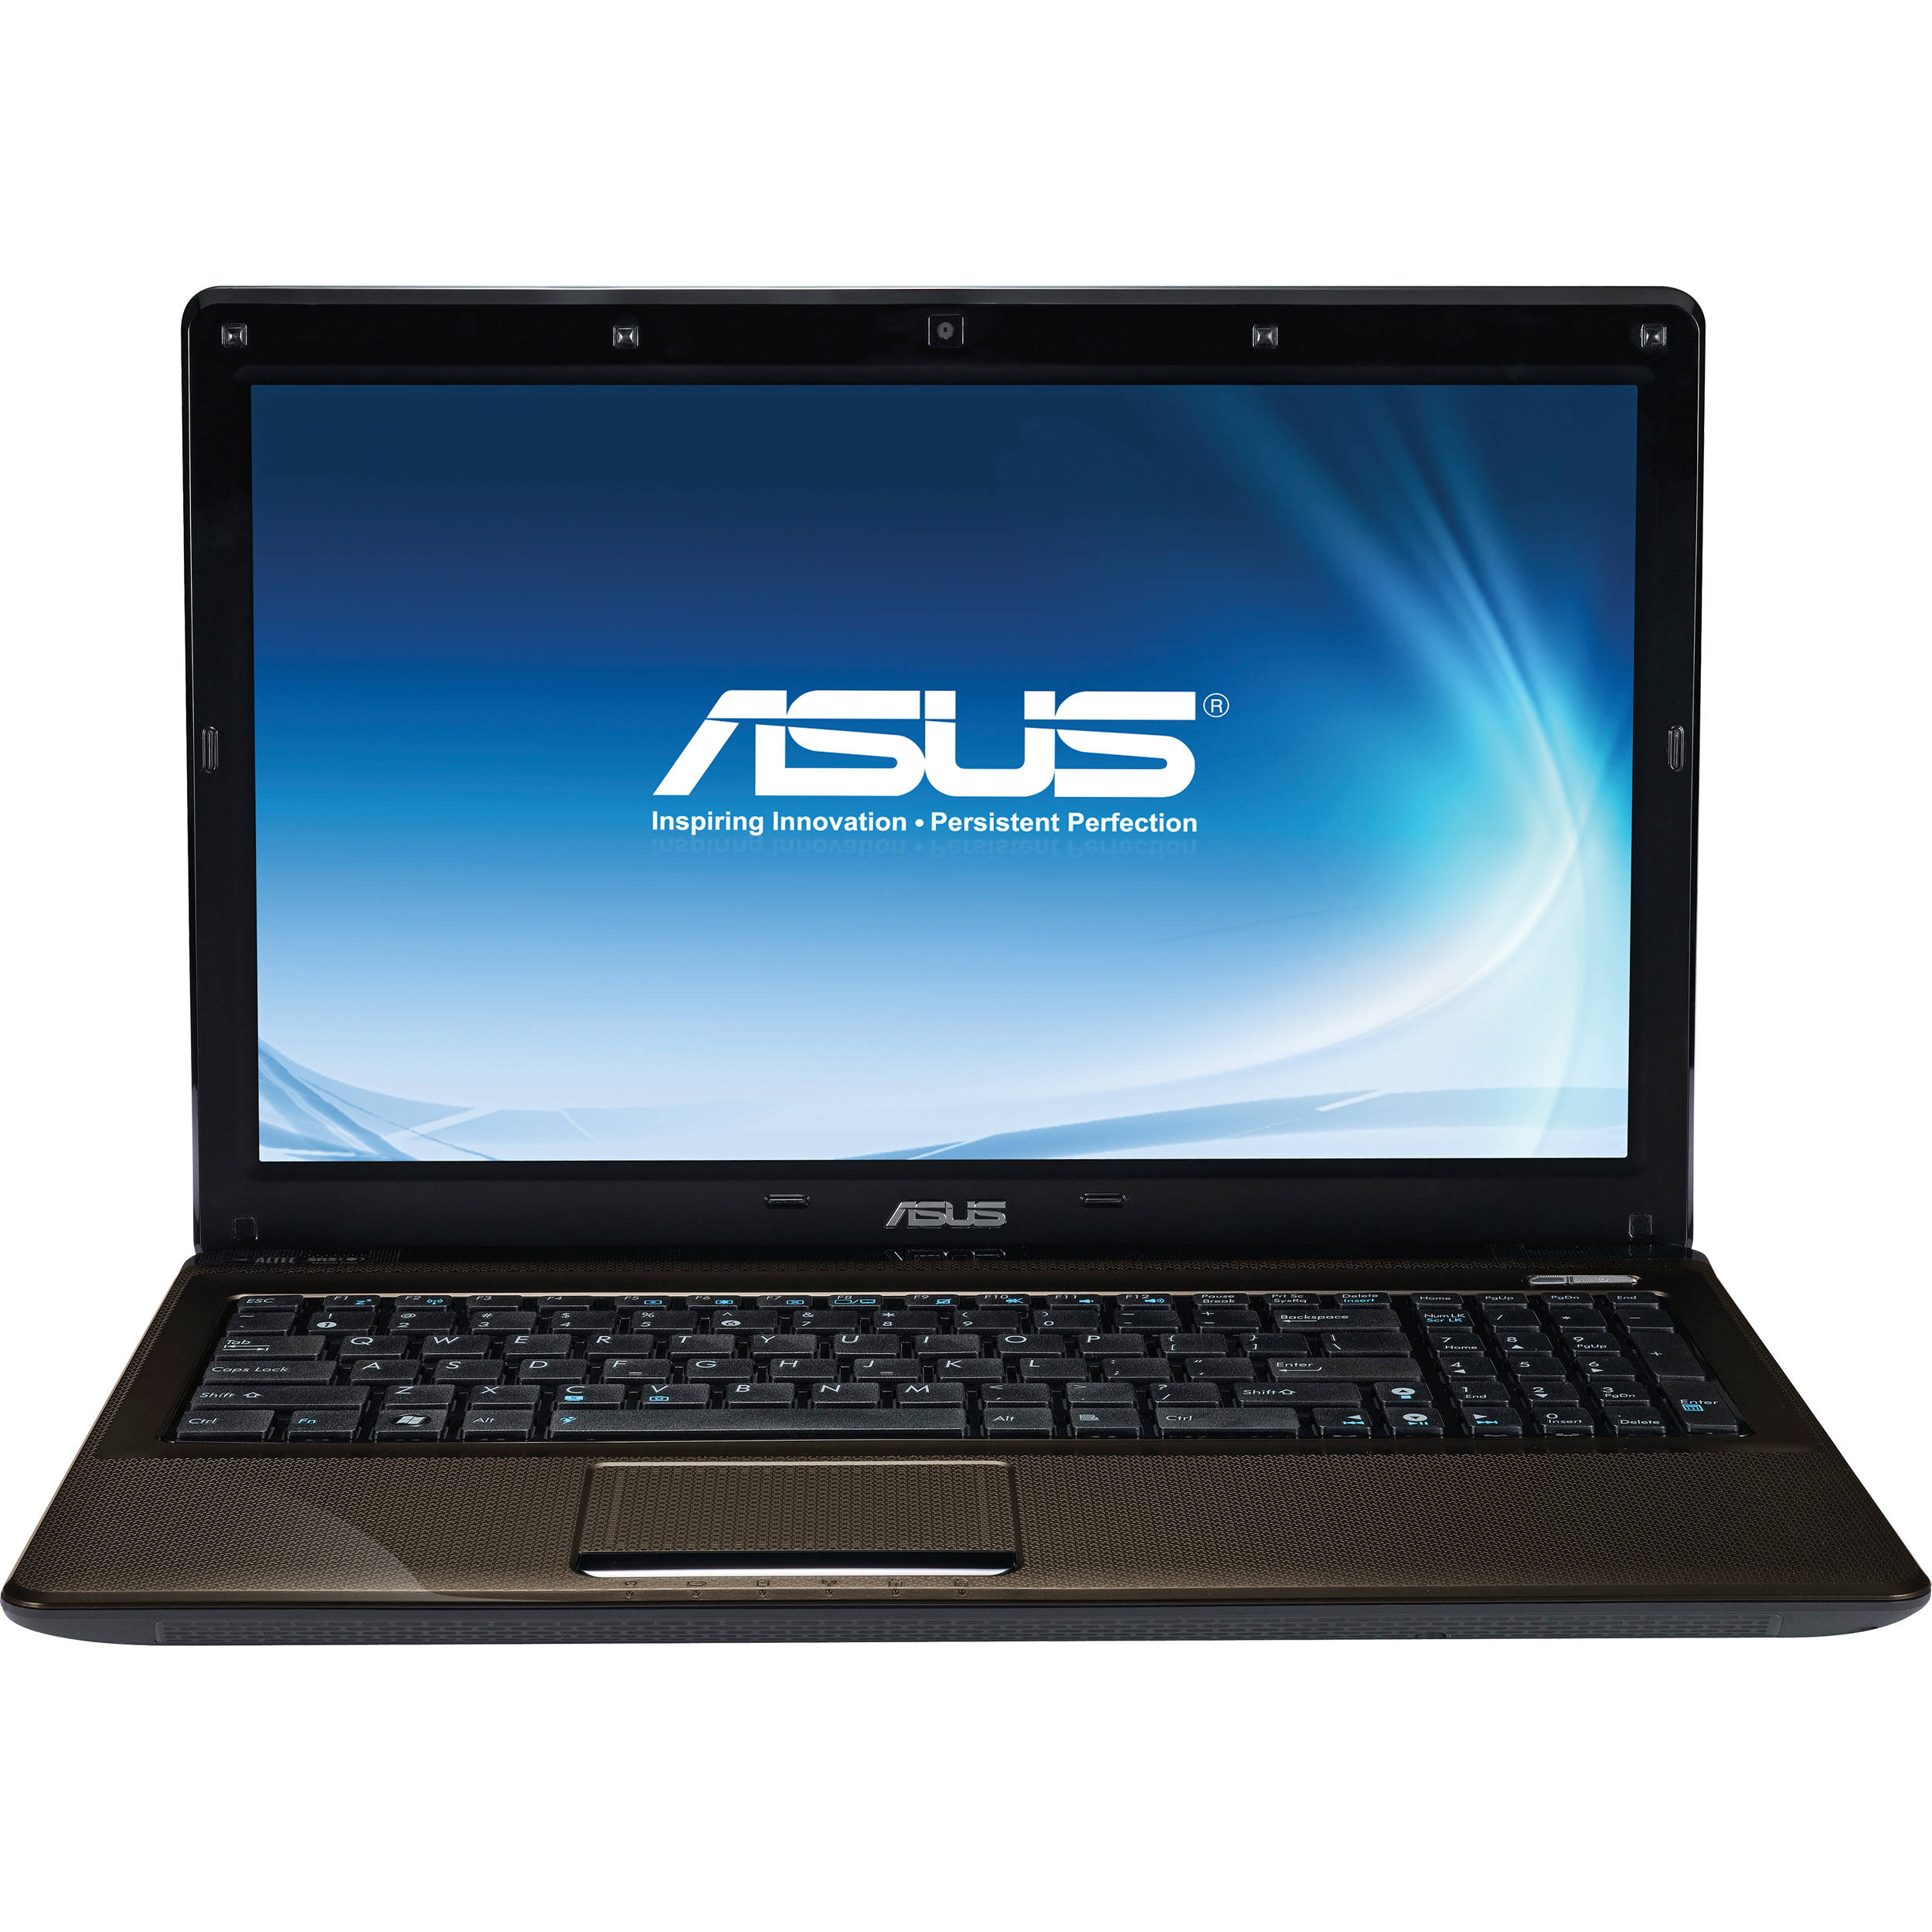 Asus K52F Notebook Power4Gear Hybrid Download Drivers